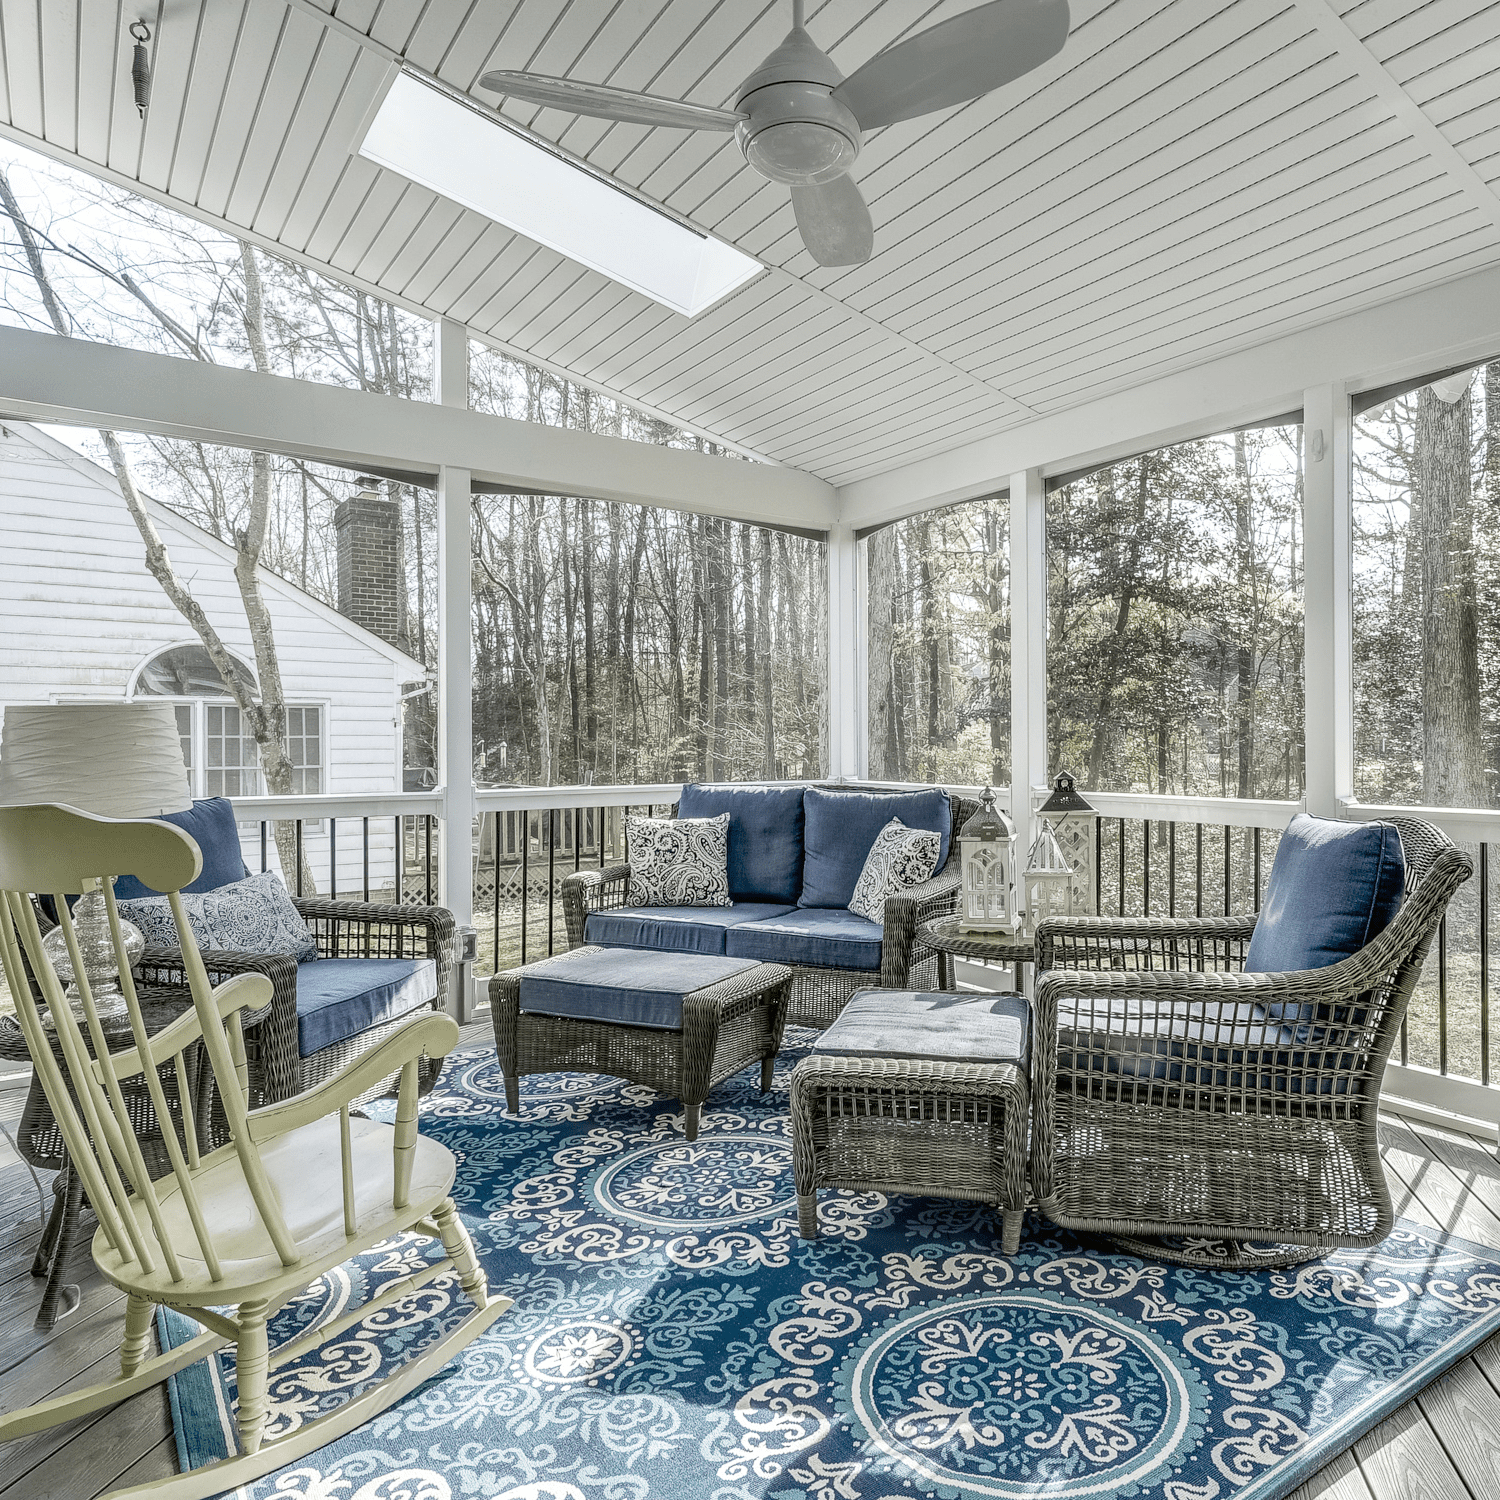 White Screened Porch with Ceiling Fan in Newport, VA